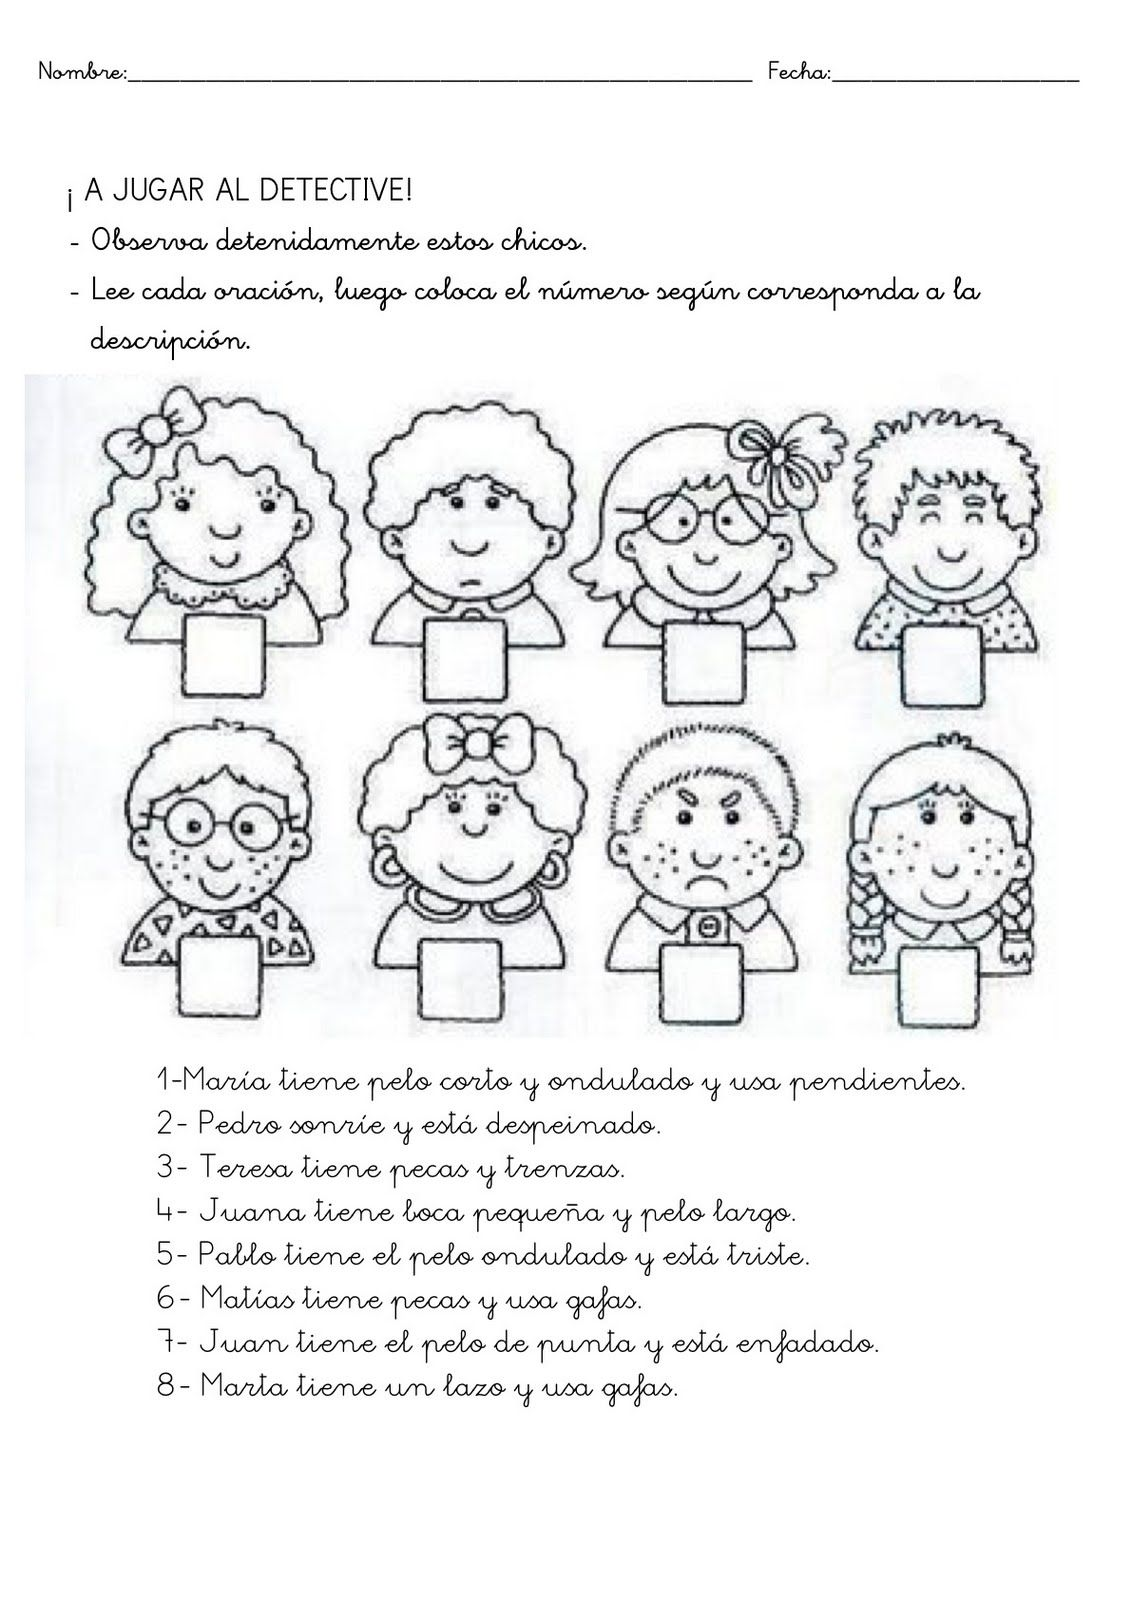 A Jugar Al Detective Not Using This Worksheet But Could Definitely Make Another One For This